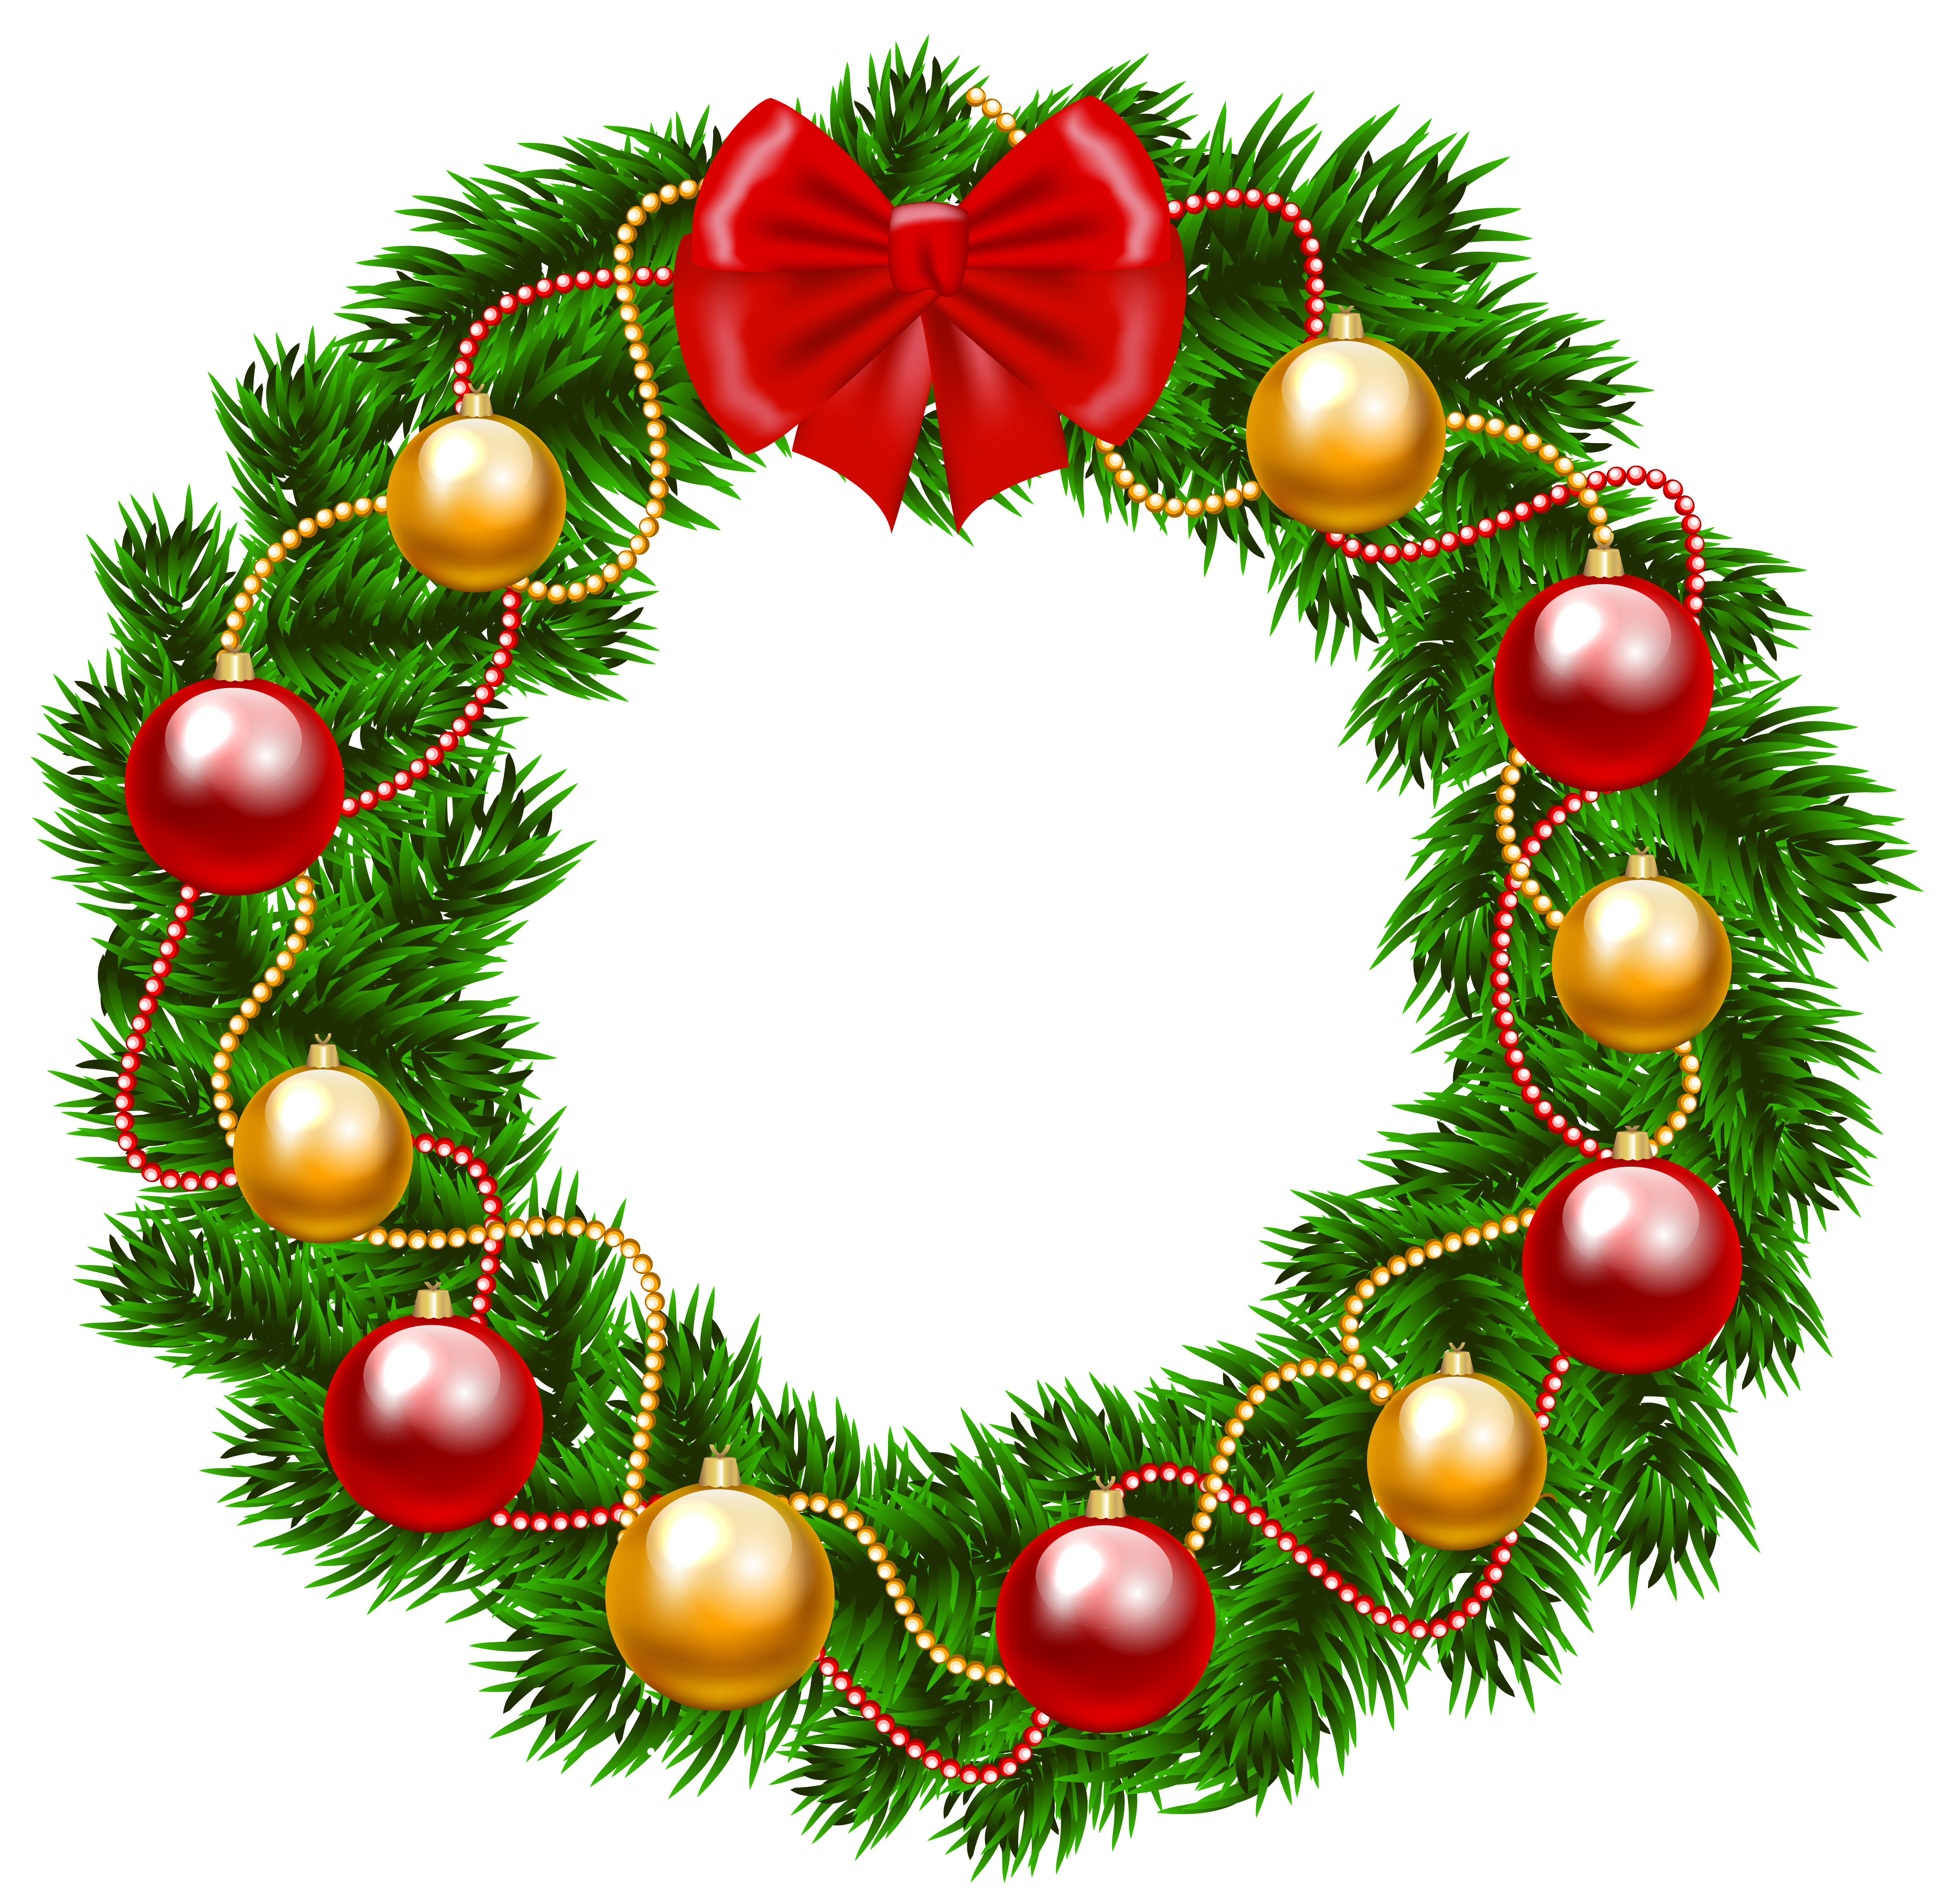 Win clipart christmas. Wreath png image gallery